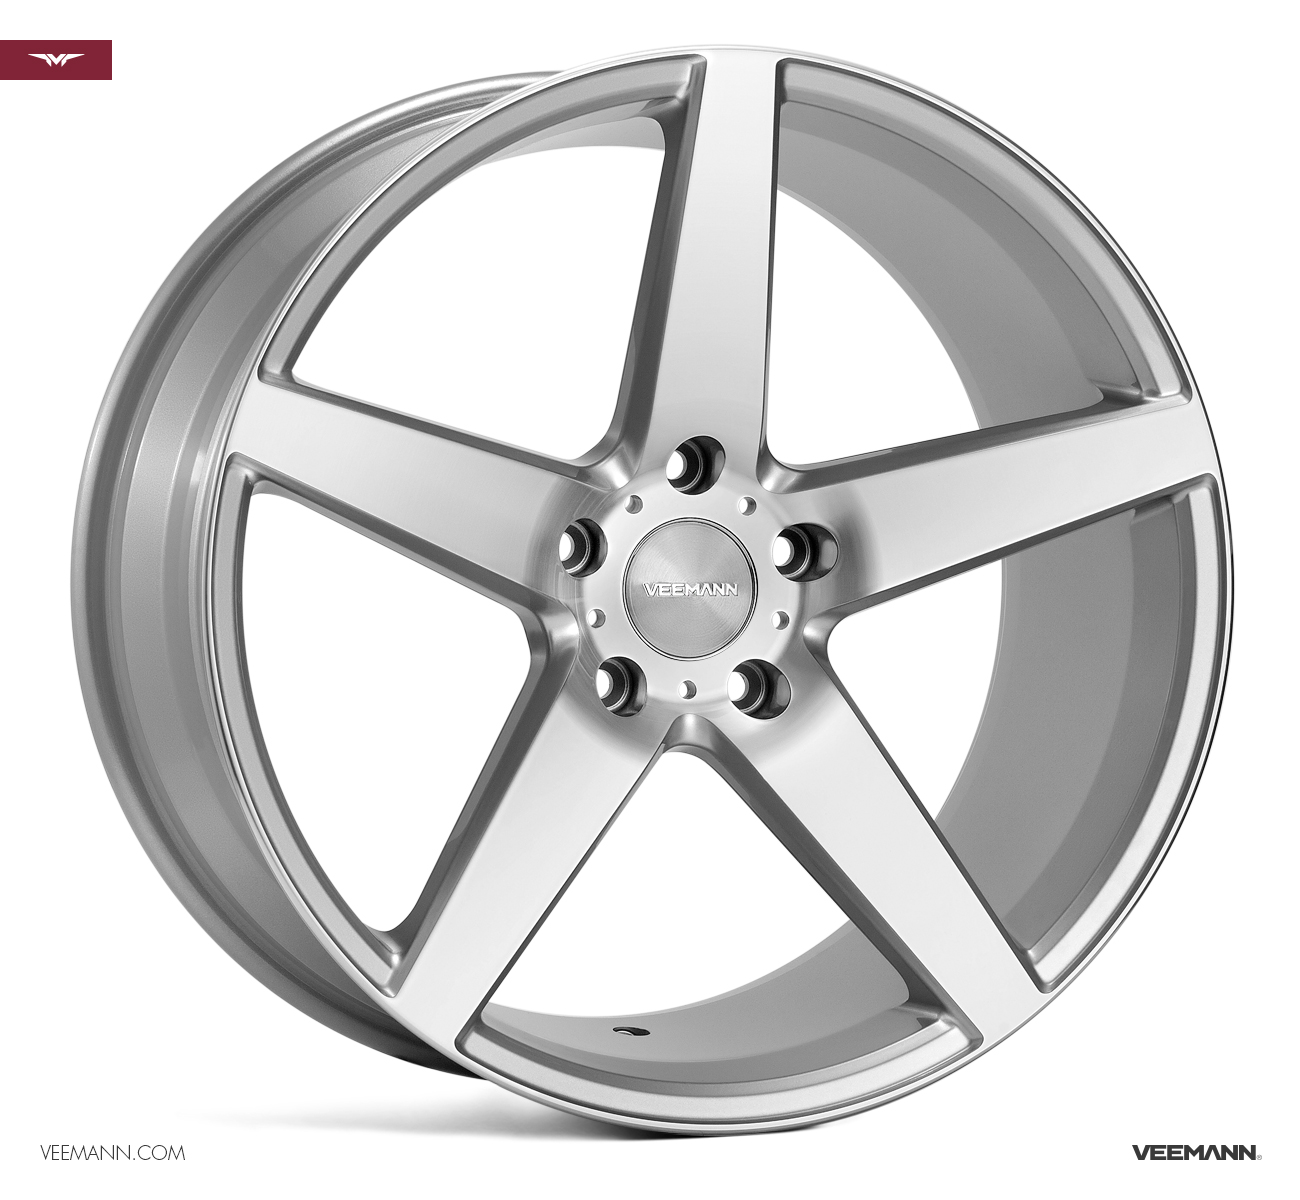 "NEW 20"" VEEMANN V-FS8 5 SPOKE CONCAVE ALLOY WHEELS IN SILVER WITH POLISHED FACE, WIDER 10"" REARS"